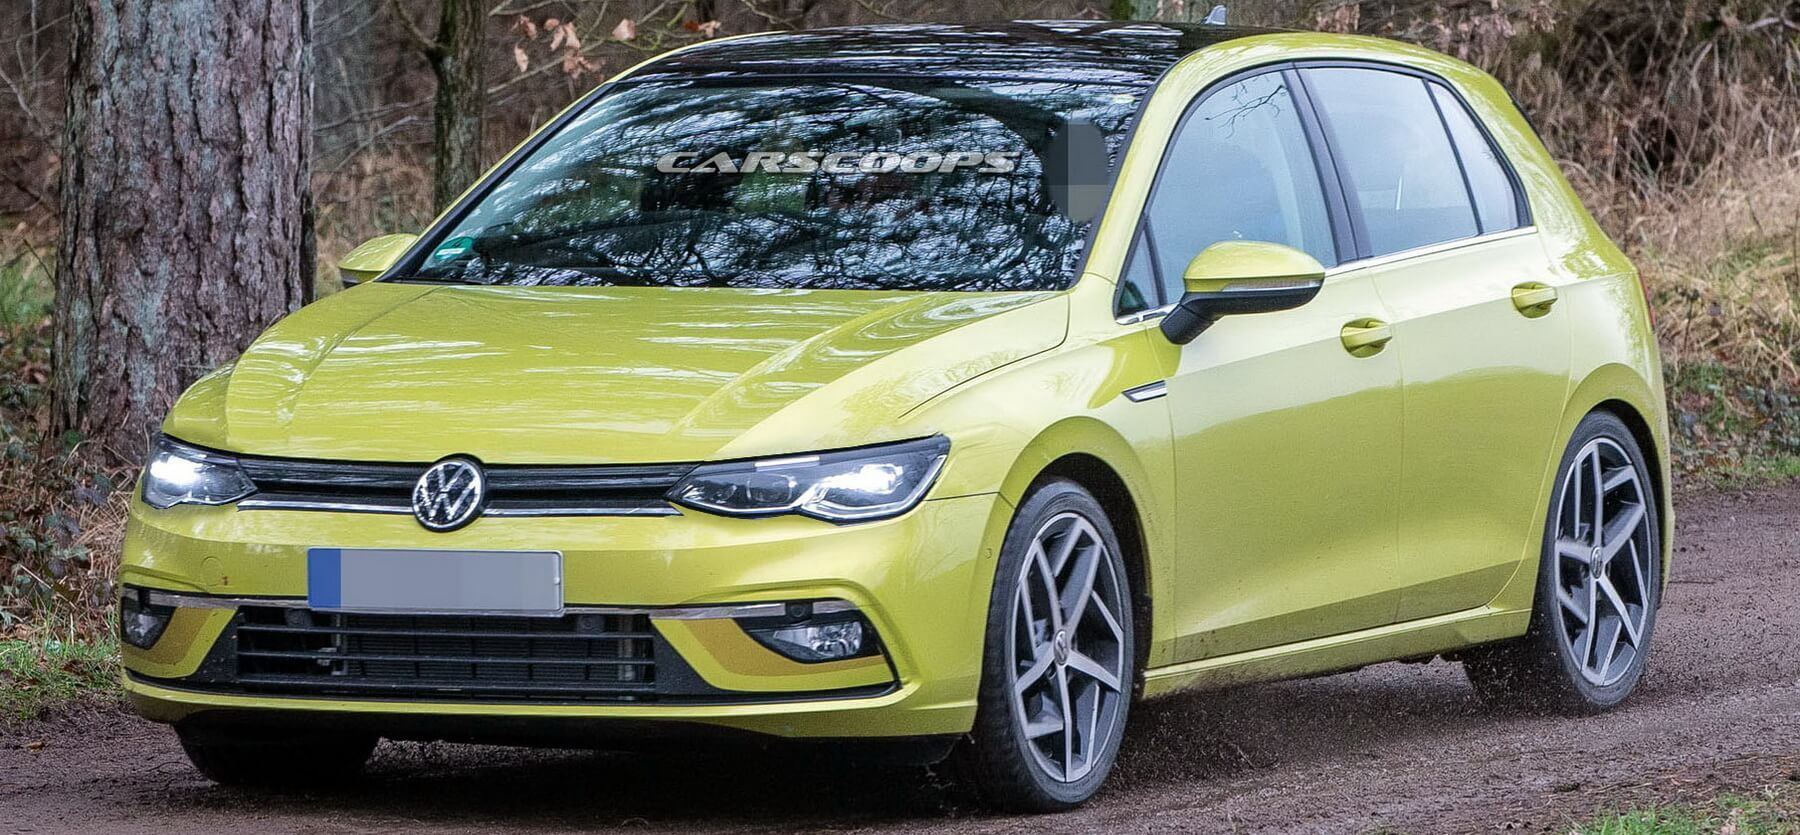 2020 Volkswagen Golf Mk8 Photographed Virtually Undisguised From All Angles Carscoops Volkswagen Golf Volkswagen Golf R Volkswagen